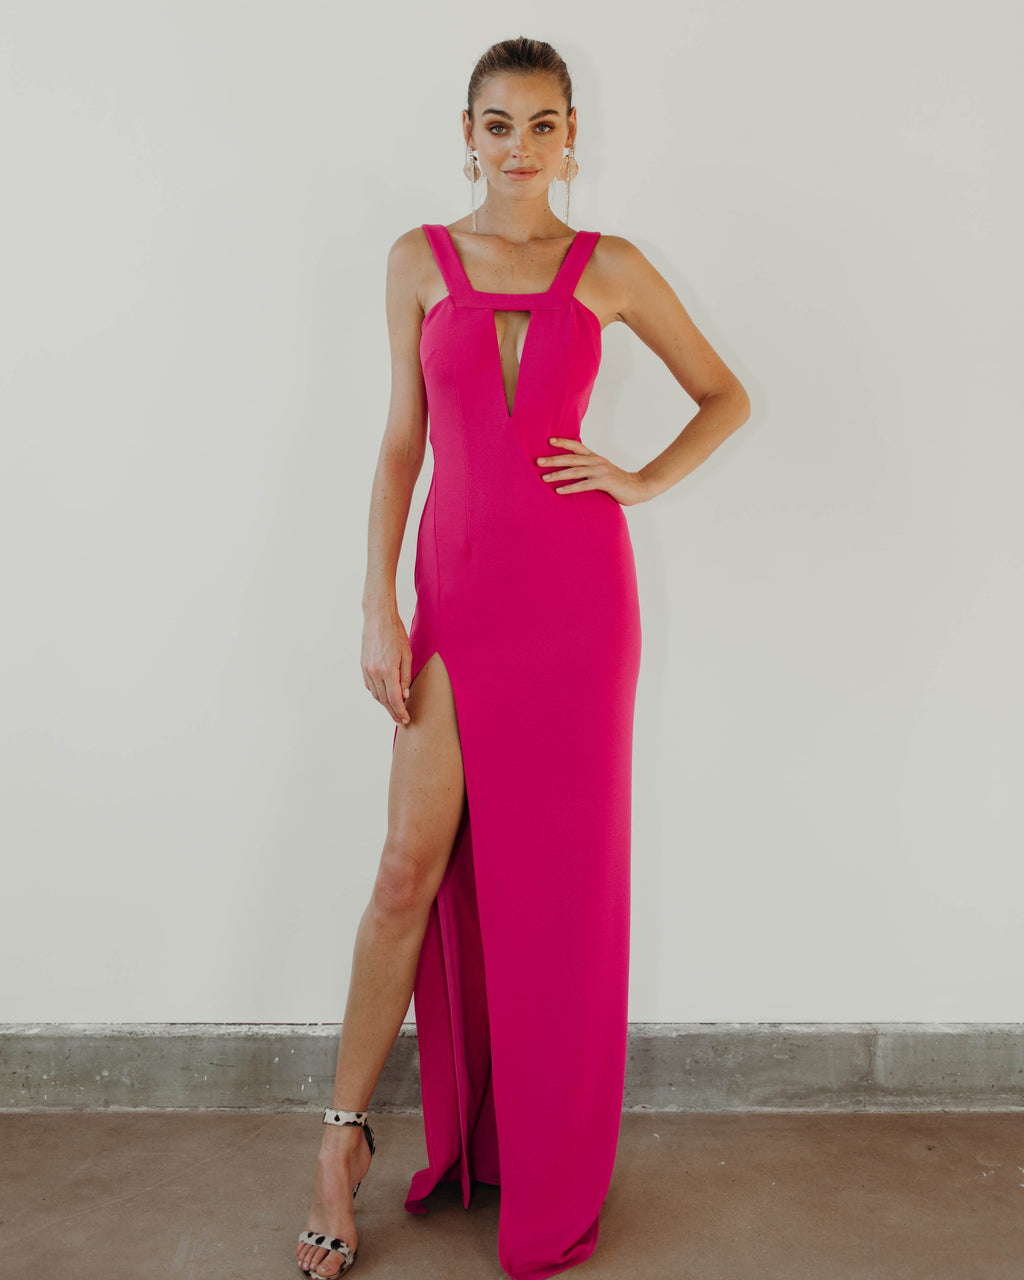 Model is wearing Take the Plunge gown in Pink Peacock by Katie May